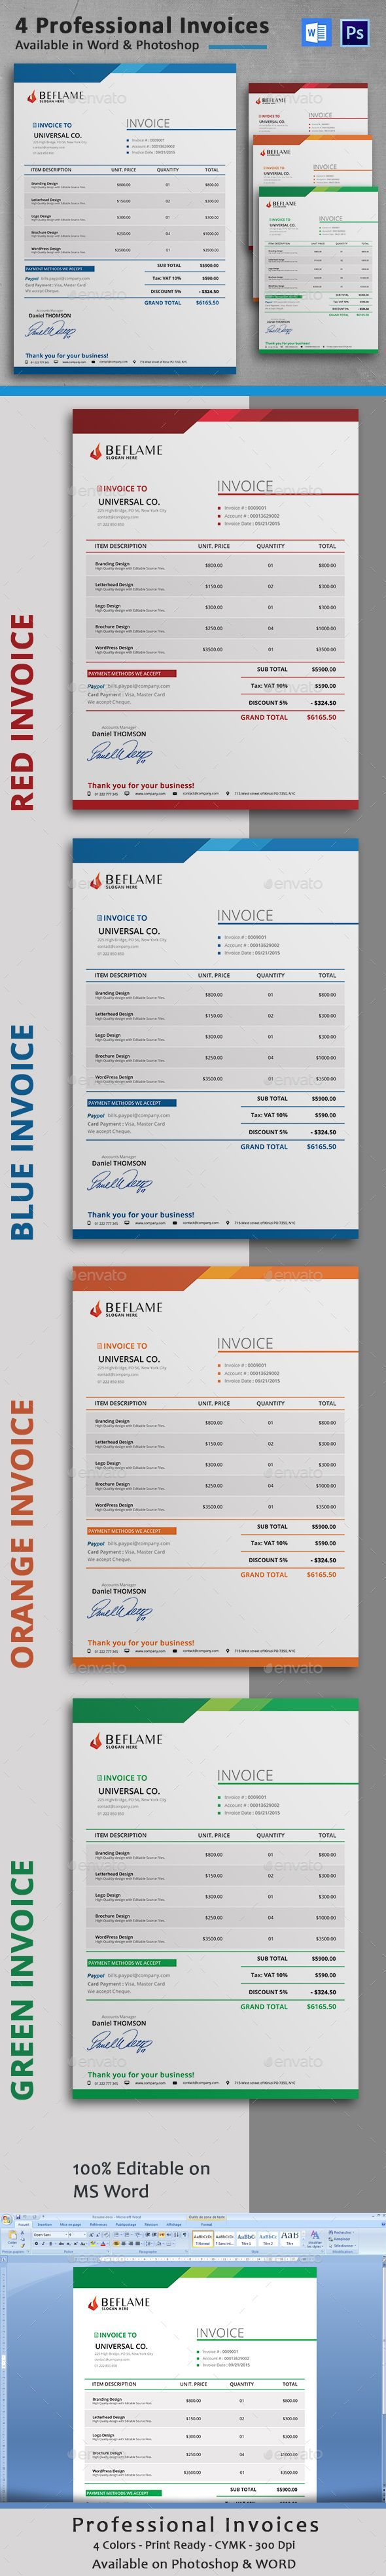 #Invoice - Proposals & Invoices Stationery Download here: https://graphicriver.net/item/invoice/16606288?ref=classicdesignp #restaurantdesign